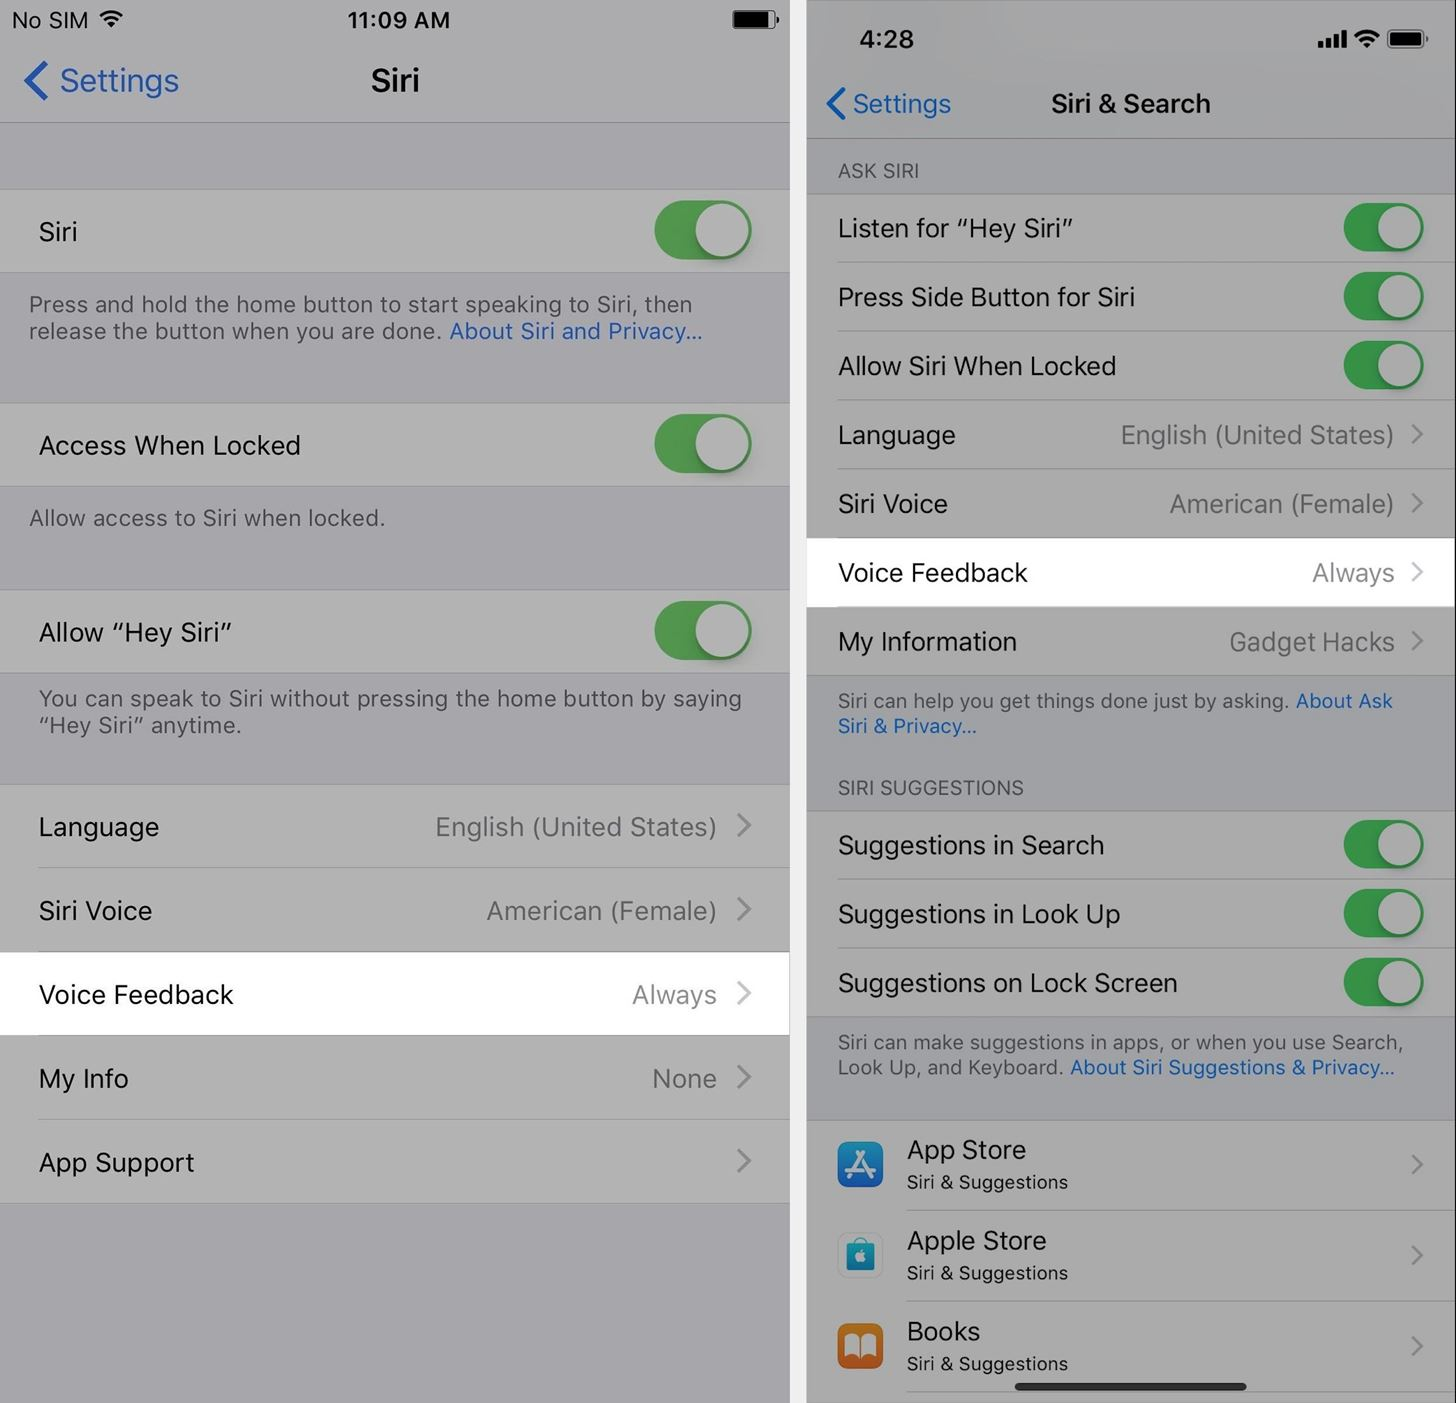 How to Turn Off Voice Feedback for Siri (Aka Mute Siri) « iOS